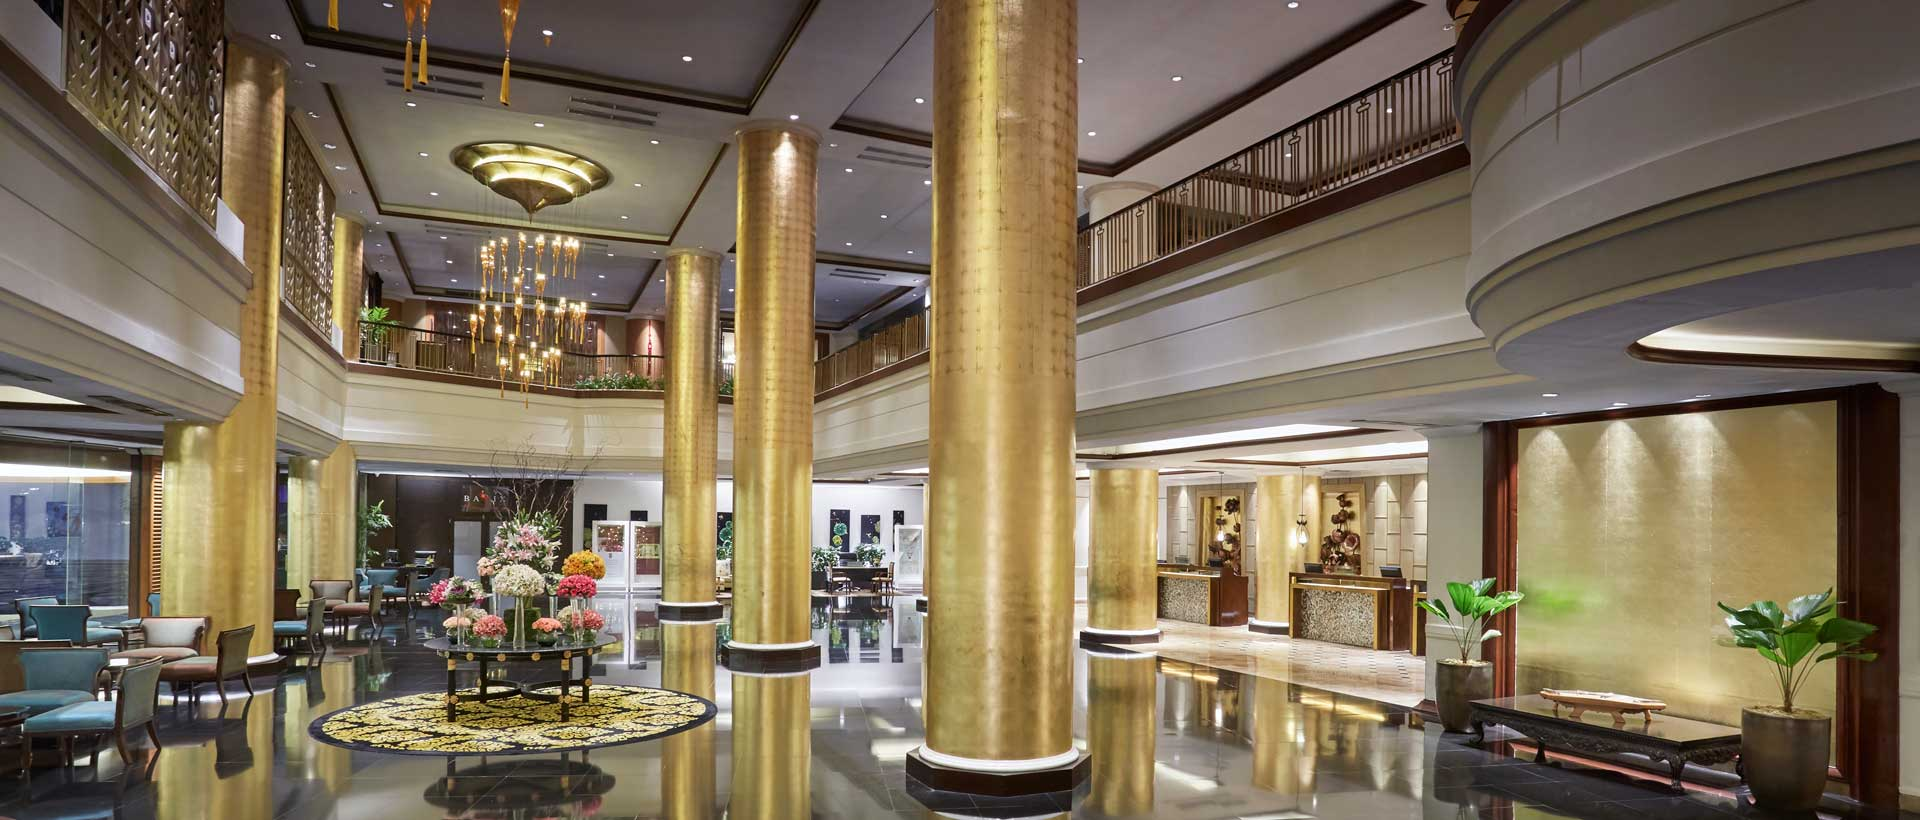 dusit thani manila Book dusit thani manila, a five star hotel of dusit hotels & resorts in , manila use stayintl and get ₹ 2,000 cashback 100% genuine reviews, photos, 247 call support.